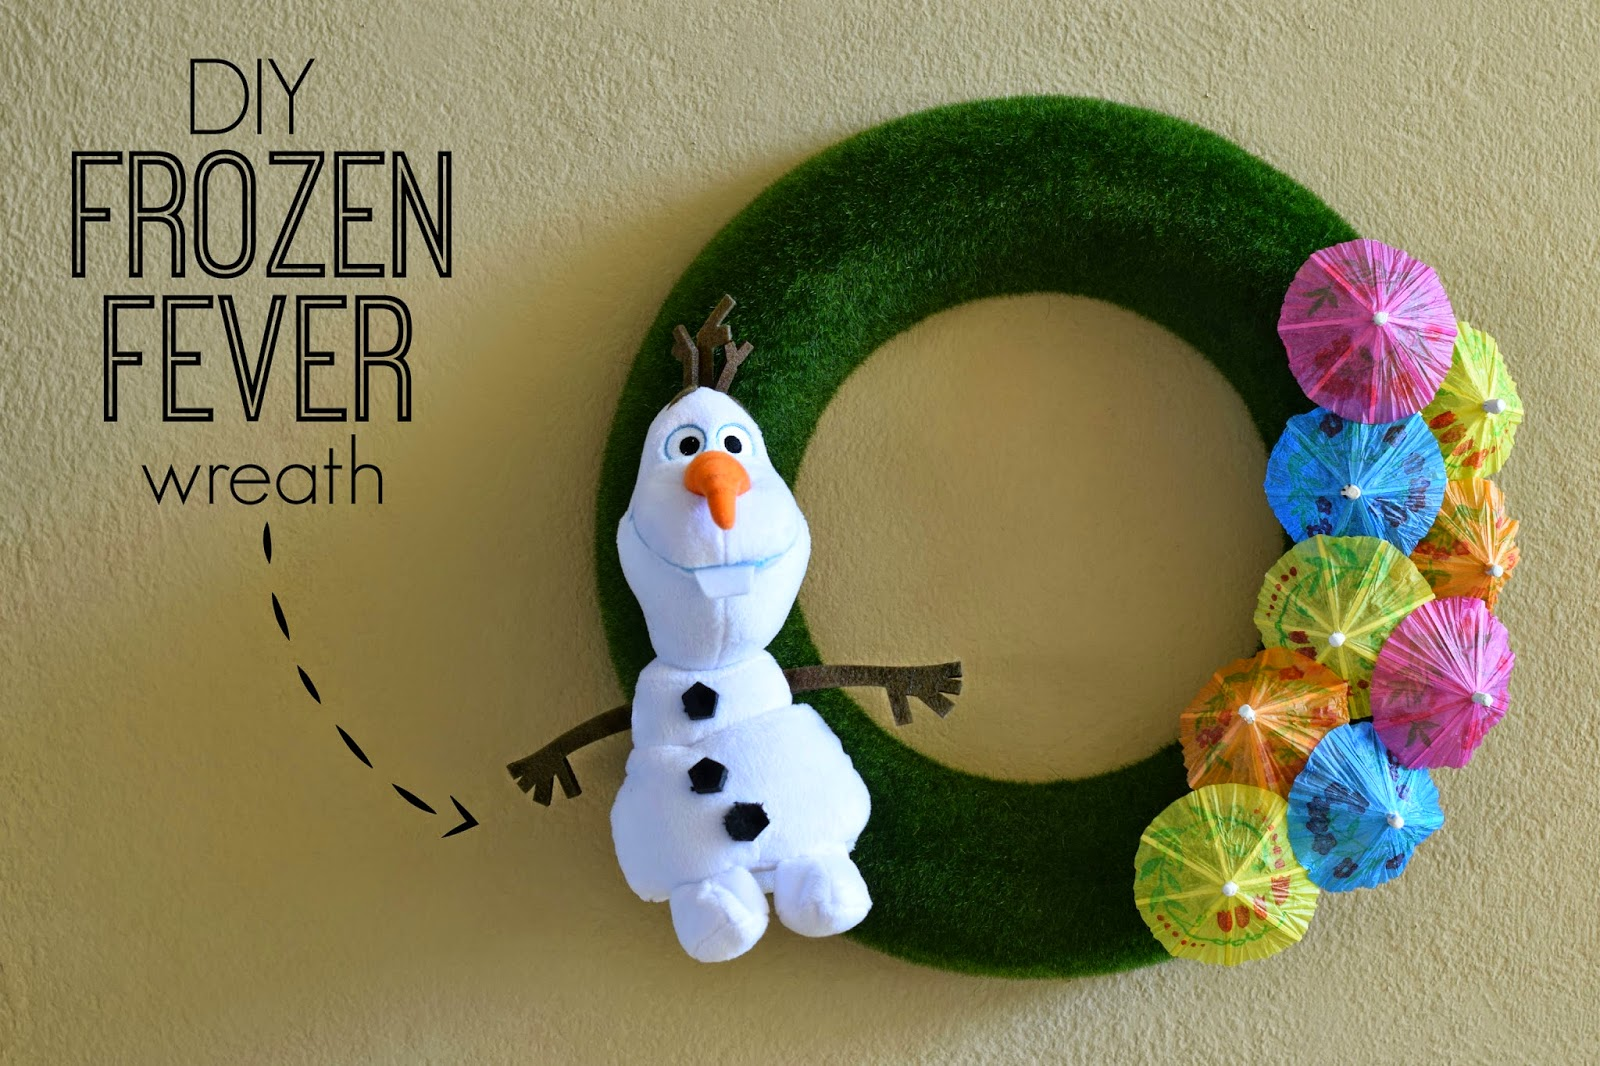 Disney Frozen fever, DIY frozen fever wreath , disney frozen DIY, frozen wreath , Olaf wreath, Disney Frozen fever DIY, #FrozenFever